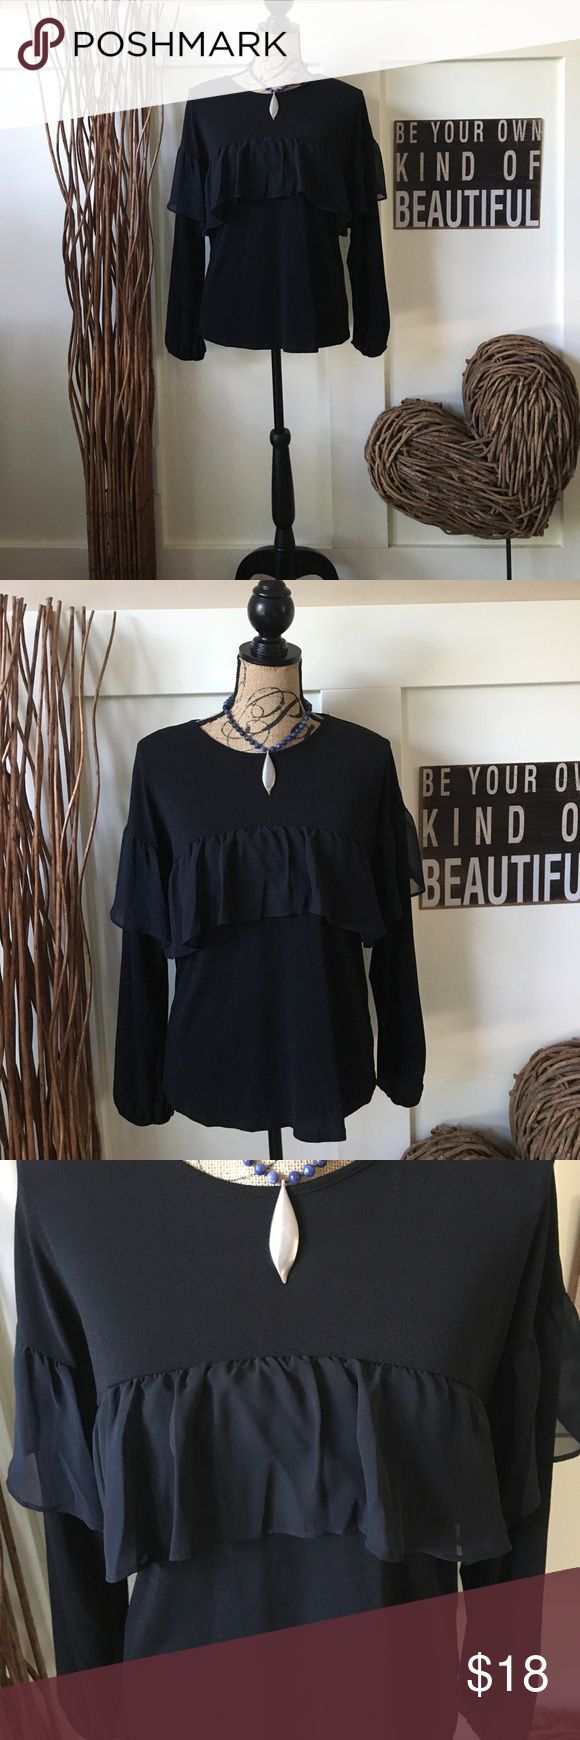 ELLE pretty long sleeve black top with ruffle This  pretty black top has a sheer ruffle across the bust  line and around each arm at the shoulder.  The  top has a full sleeve with elastic wrists and is feminine and oh so pretty. Elle Tops